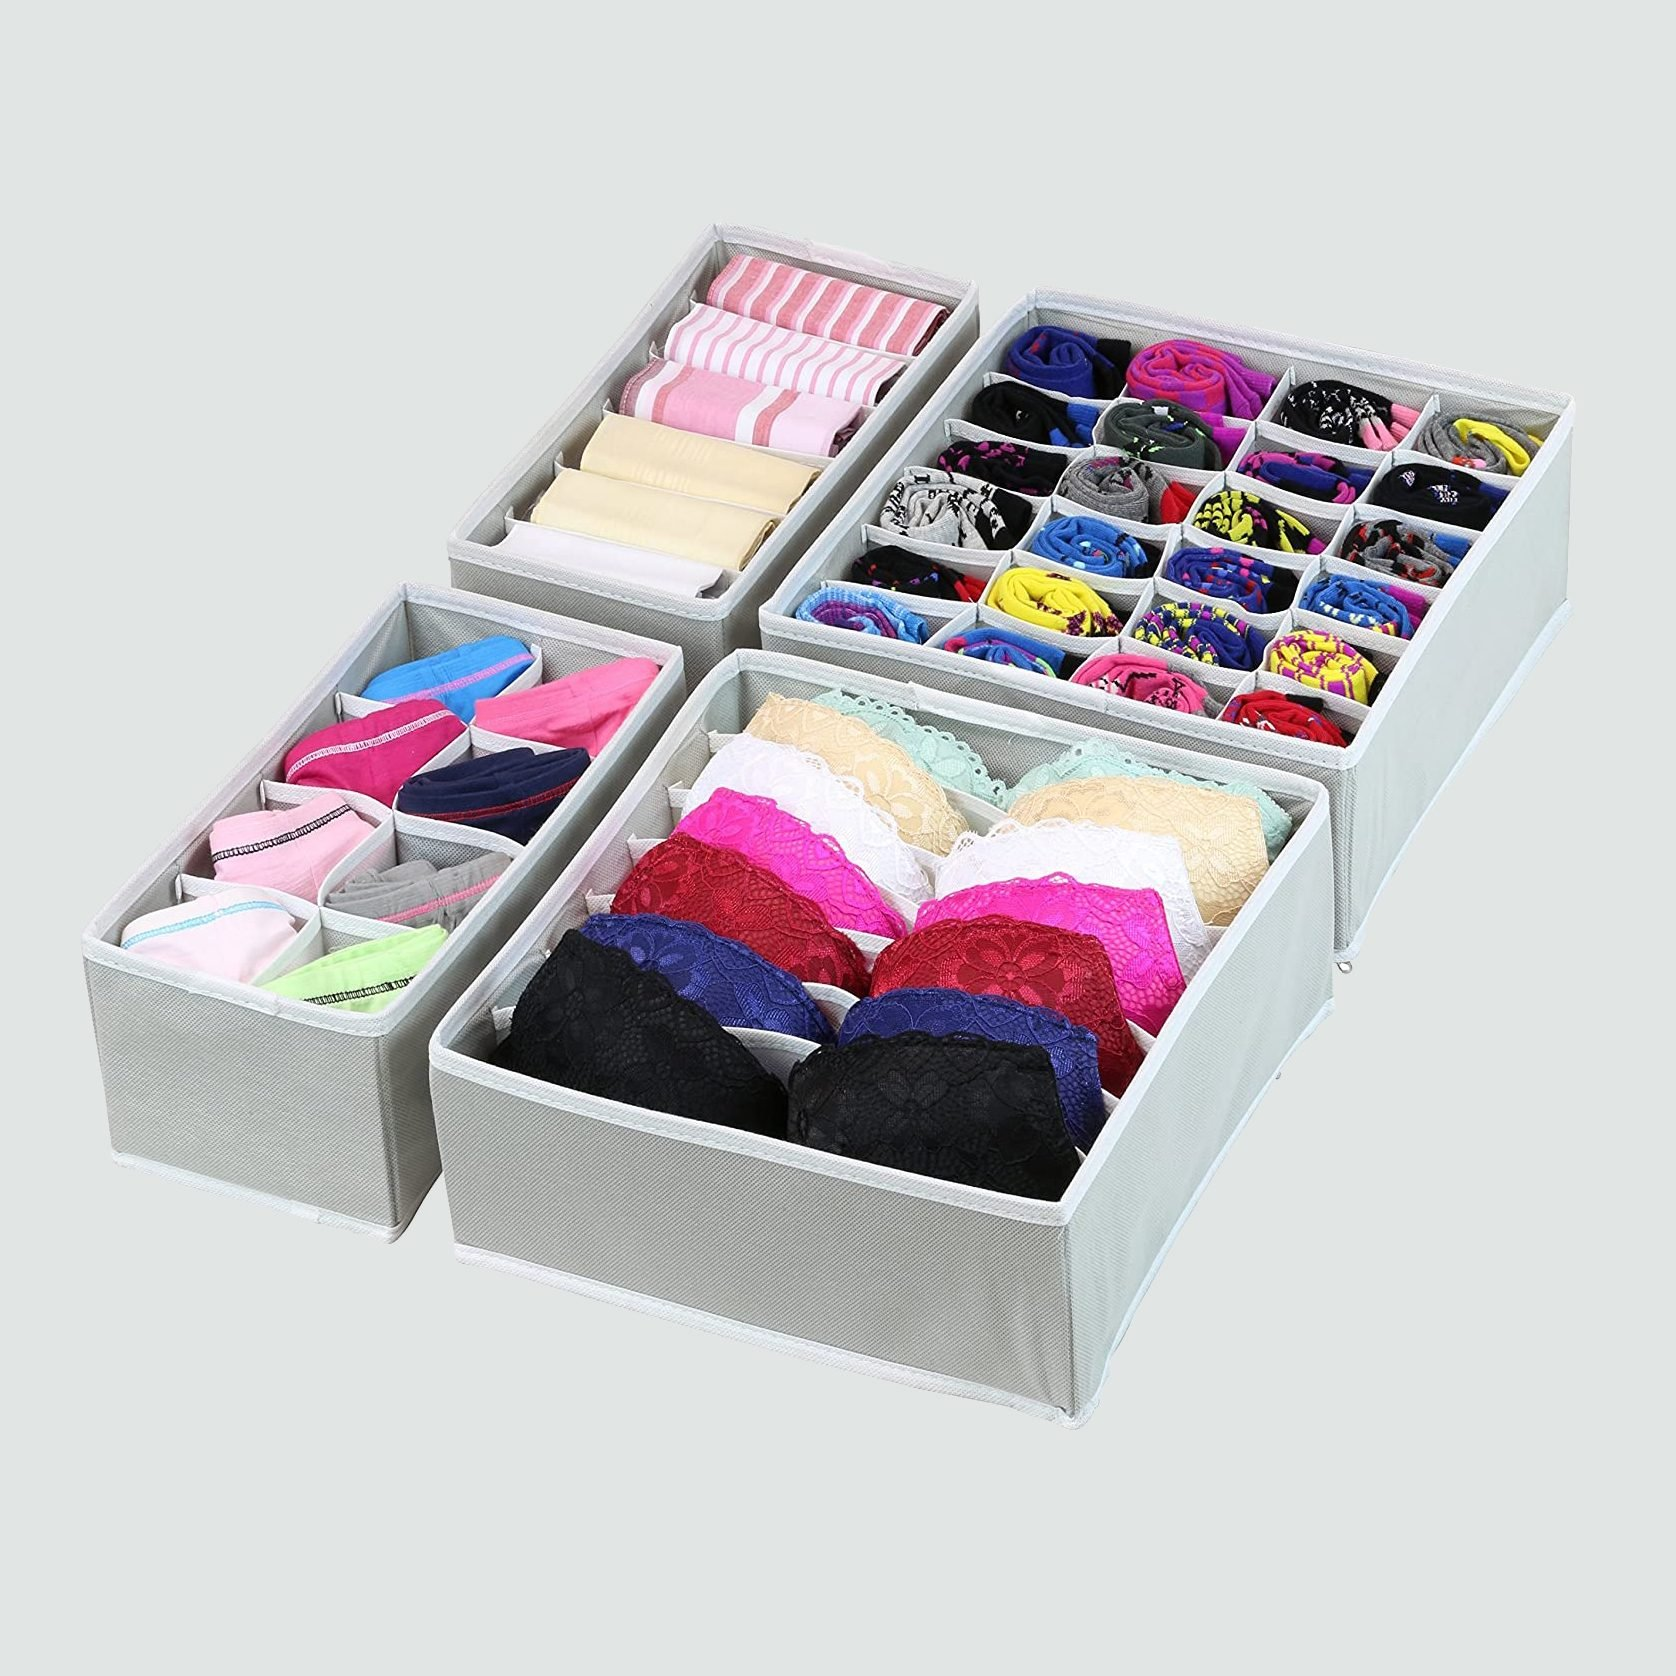 Simple Houseware underwear and lingerie organizers